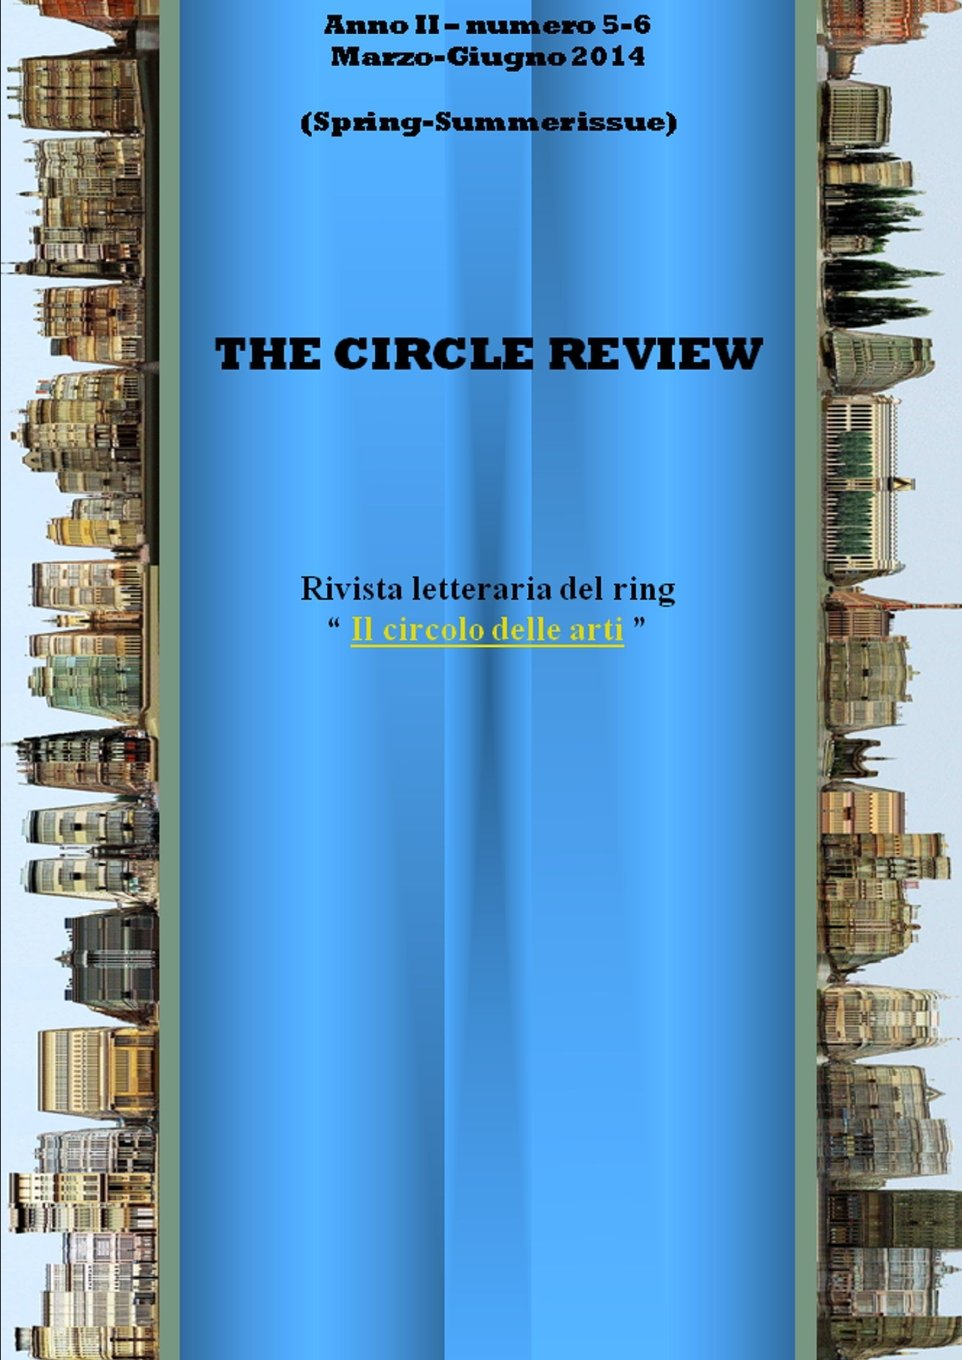 Download The Circle review n. 5-6 (Marzo - Giugno 2014) Spring/Summer issue (Italian Edition) pdf